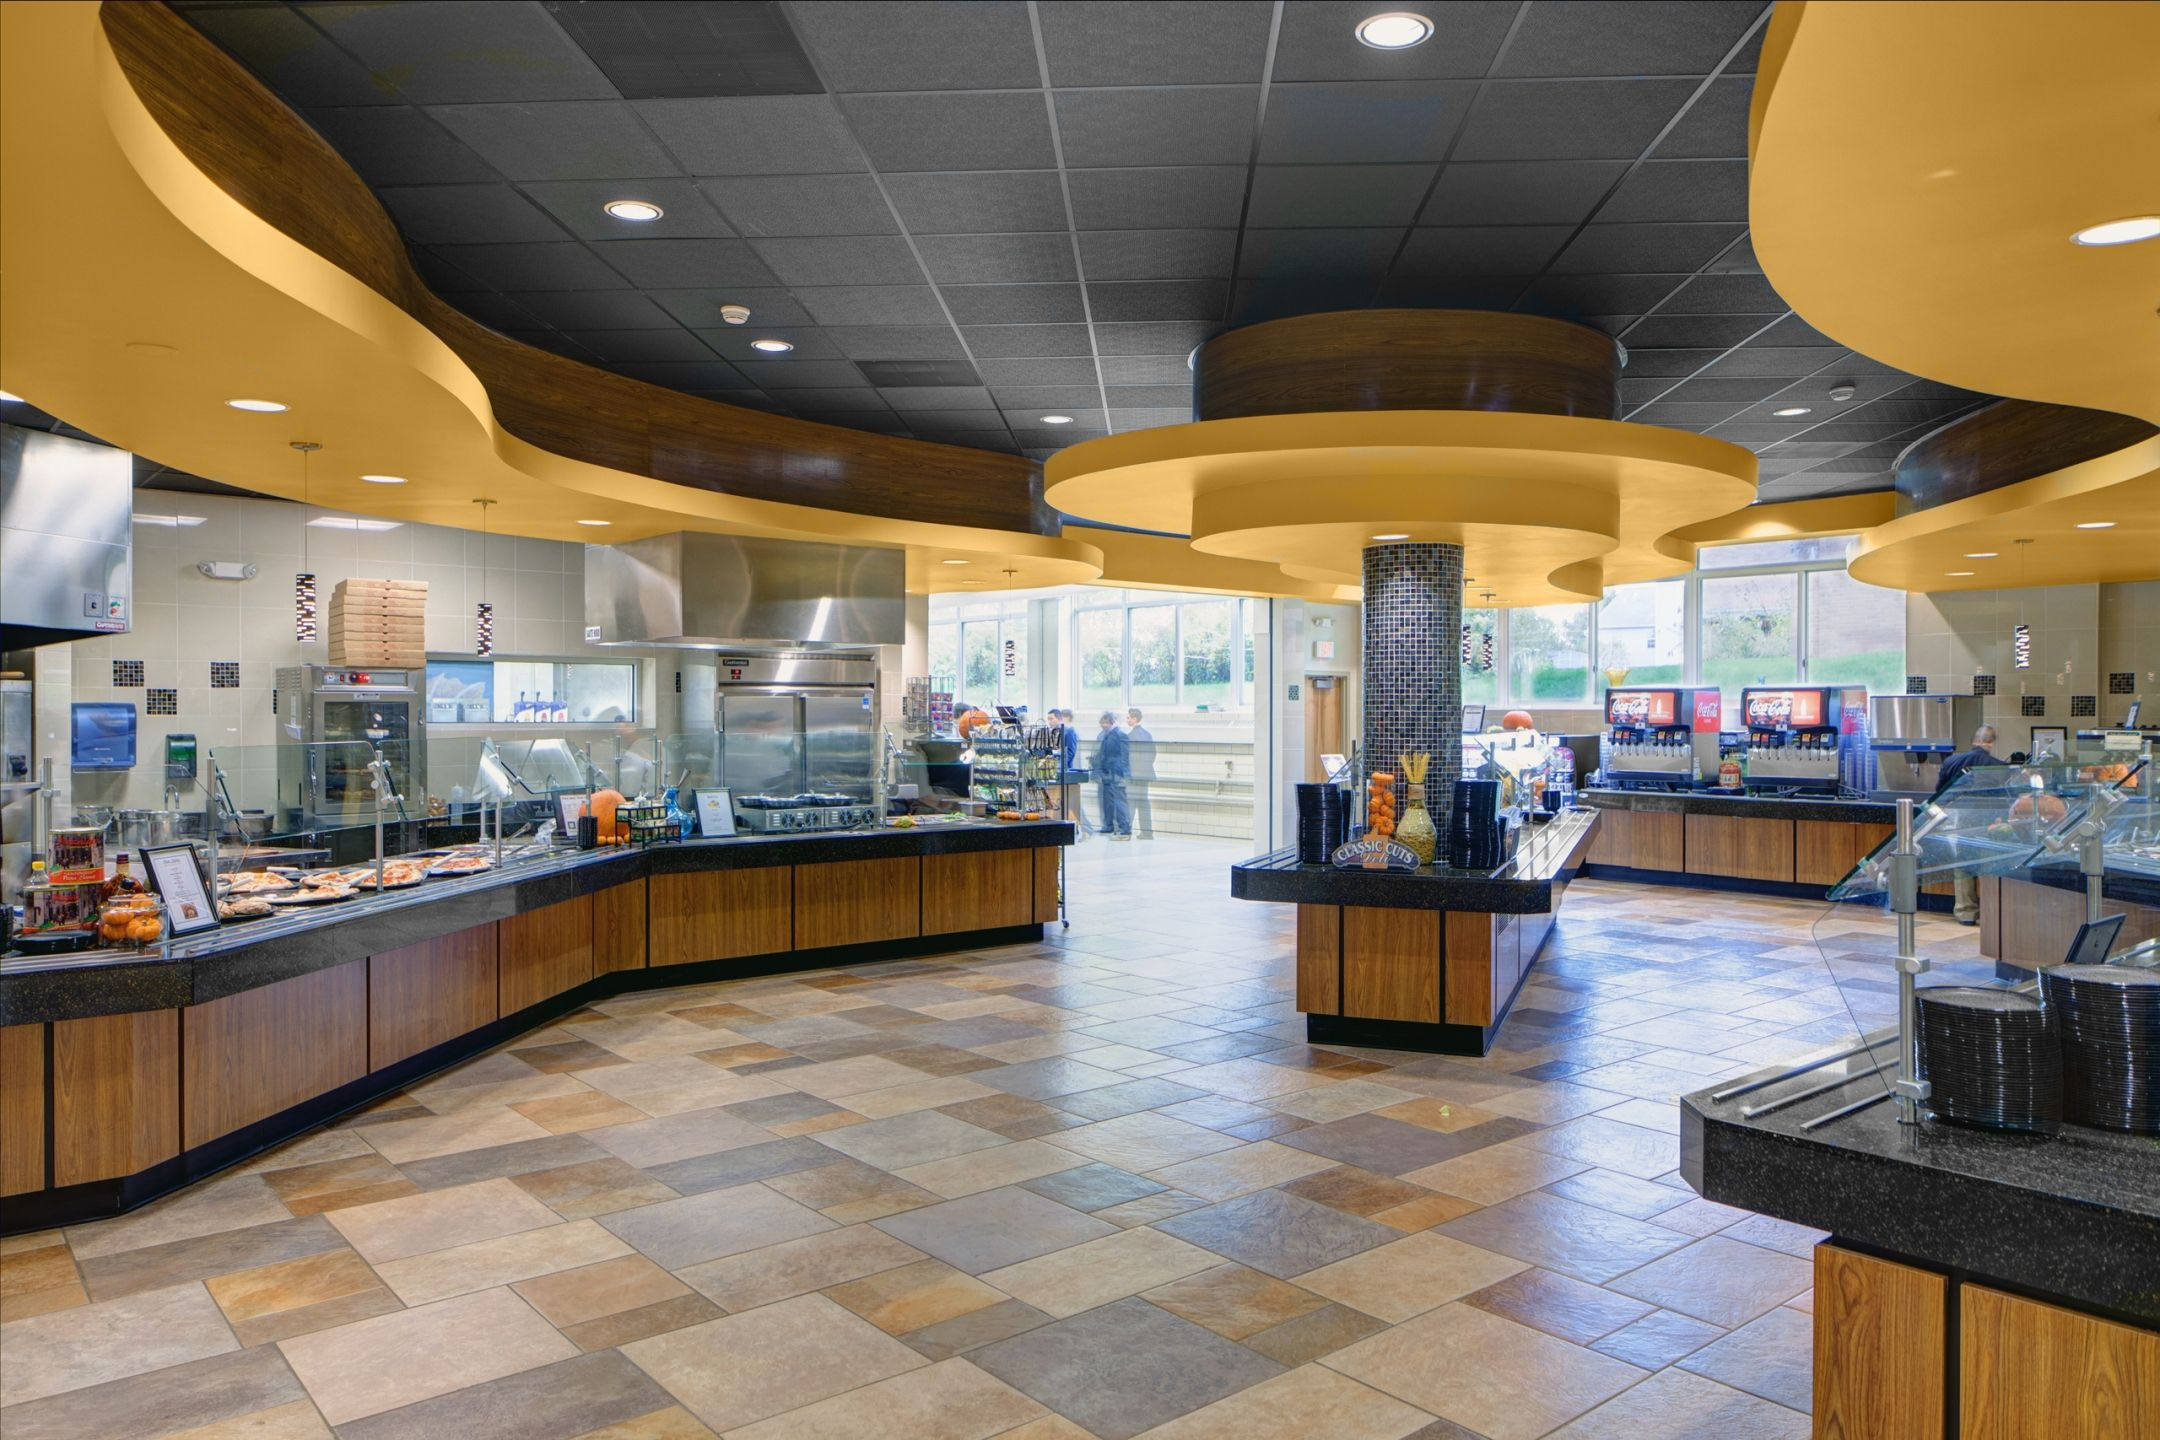 Image Result For Innovative High School Cafeteria